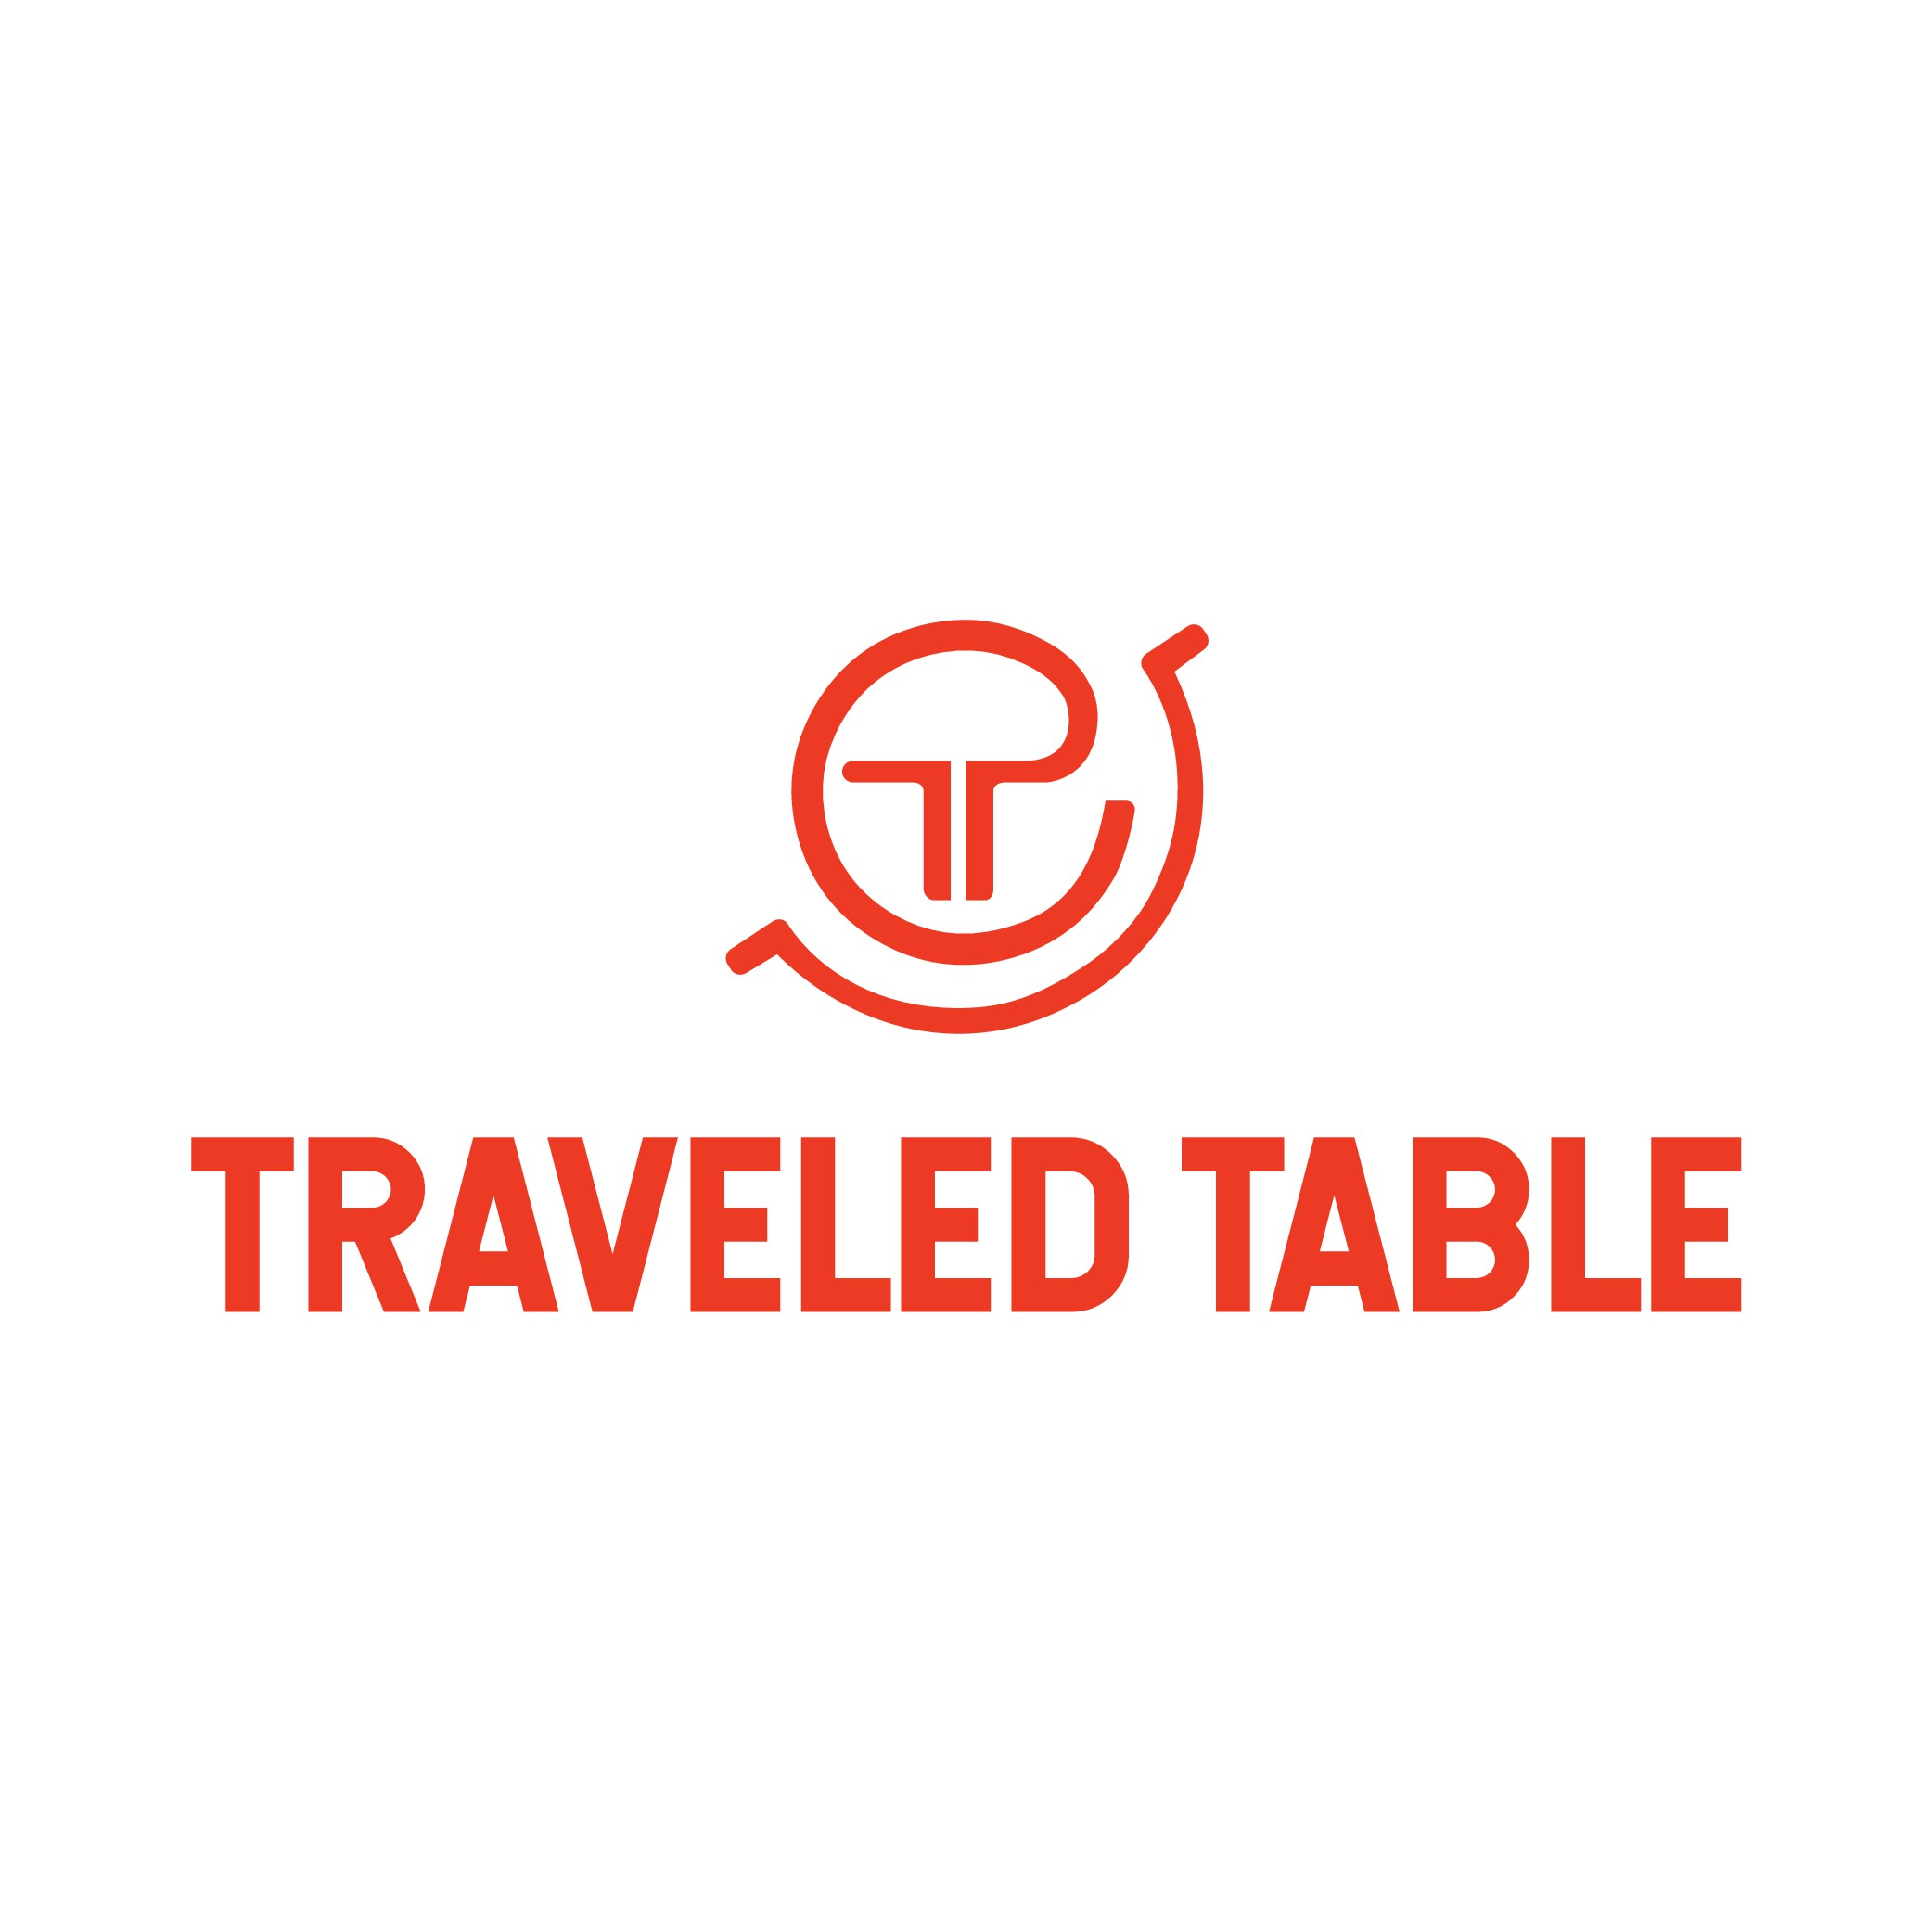 Kitchenware Logo for Well-Traveled Foodies and Home Cooks